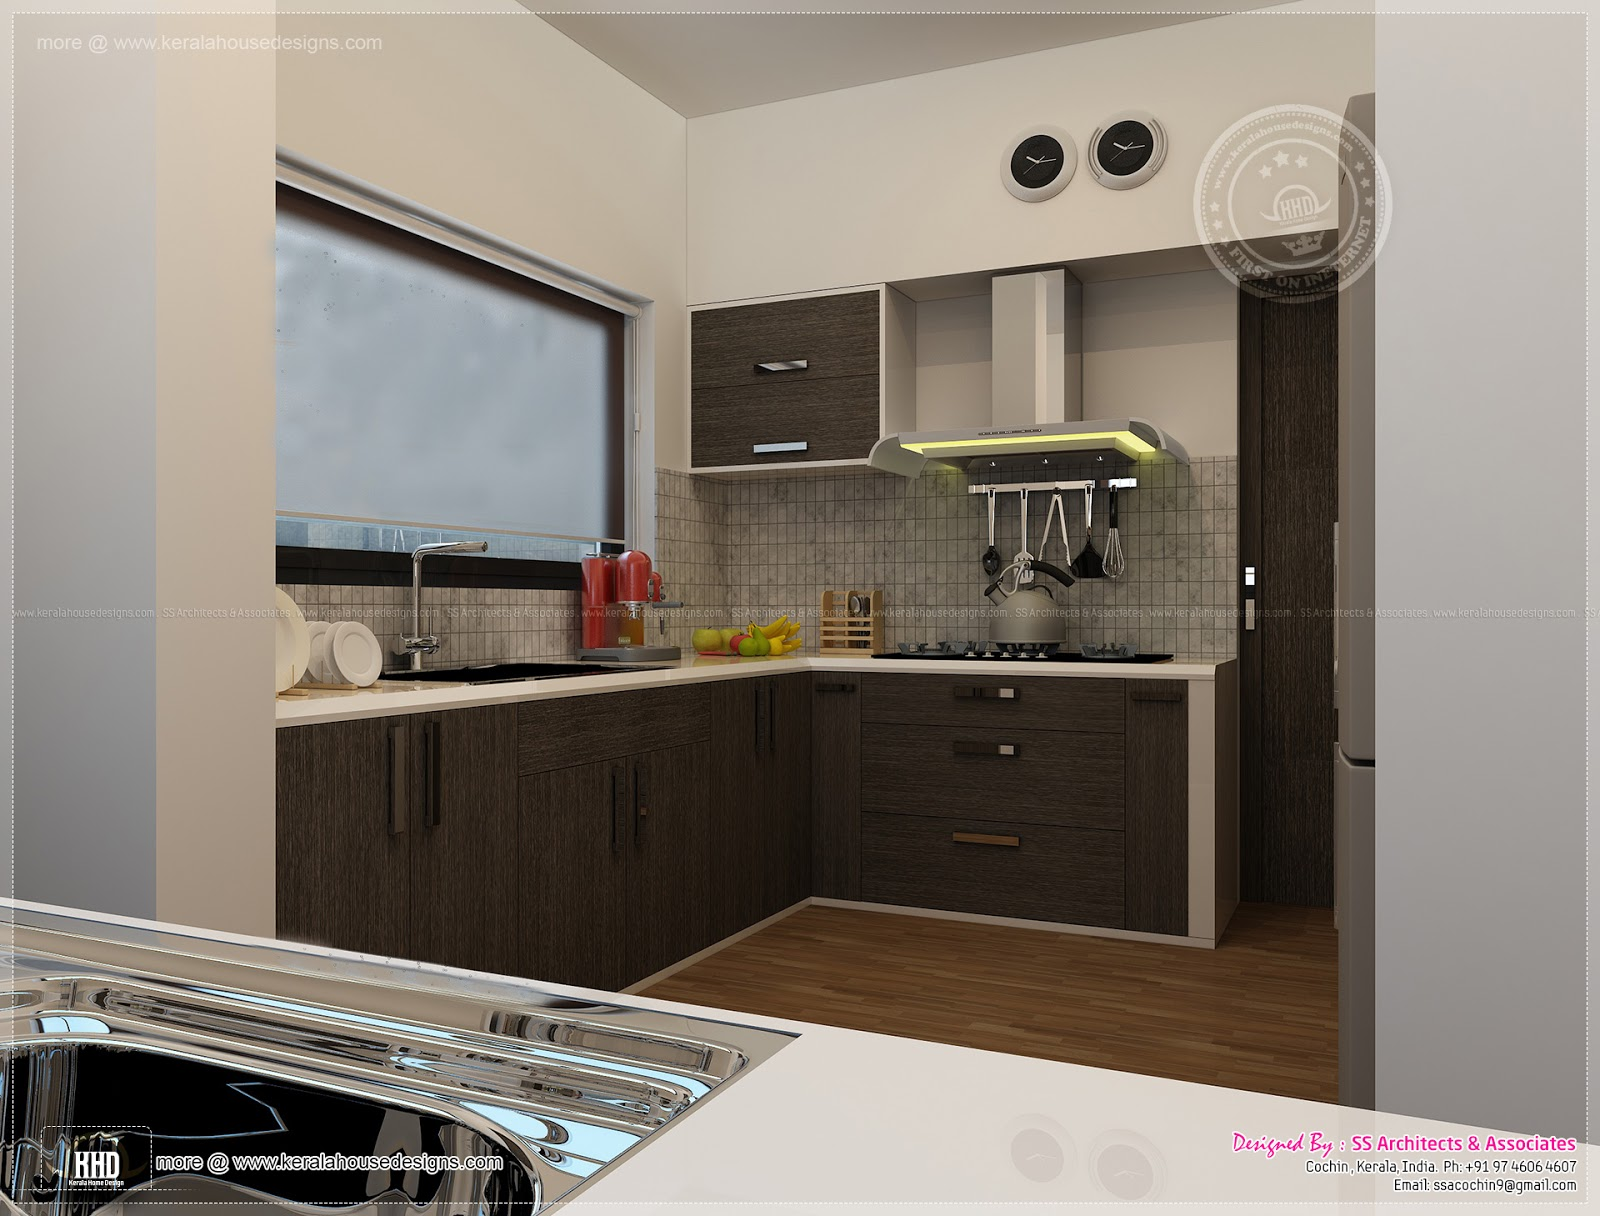 kitchen interior views ss architects cochin kerala home kitchen views comments home kitchen design display